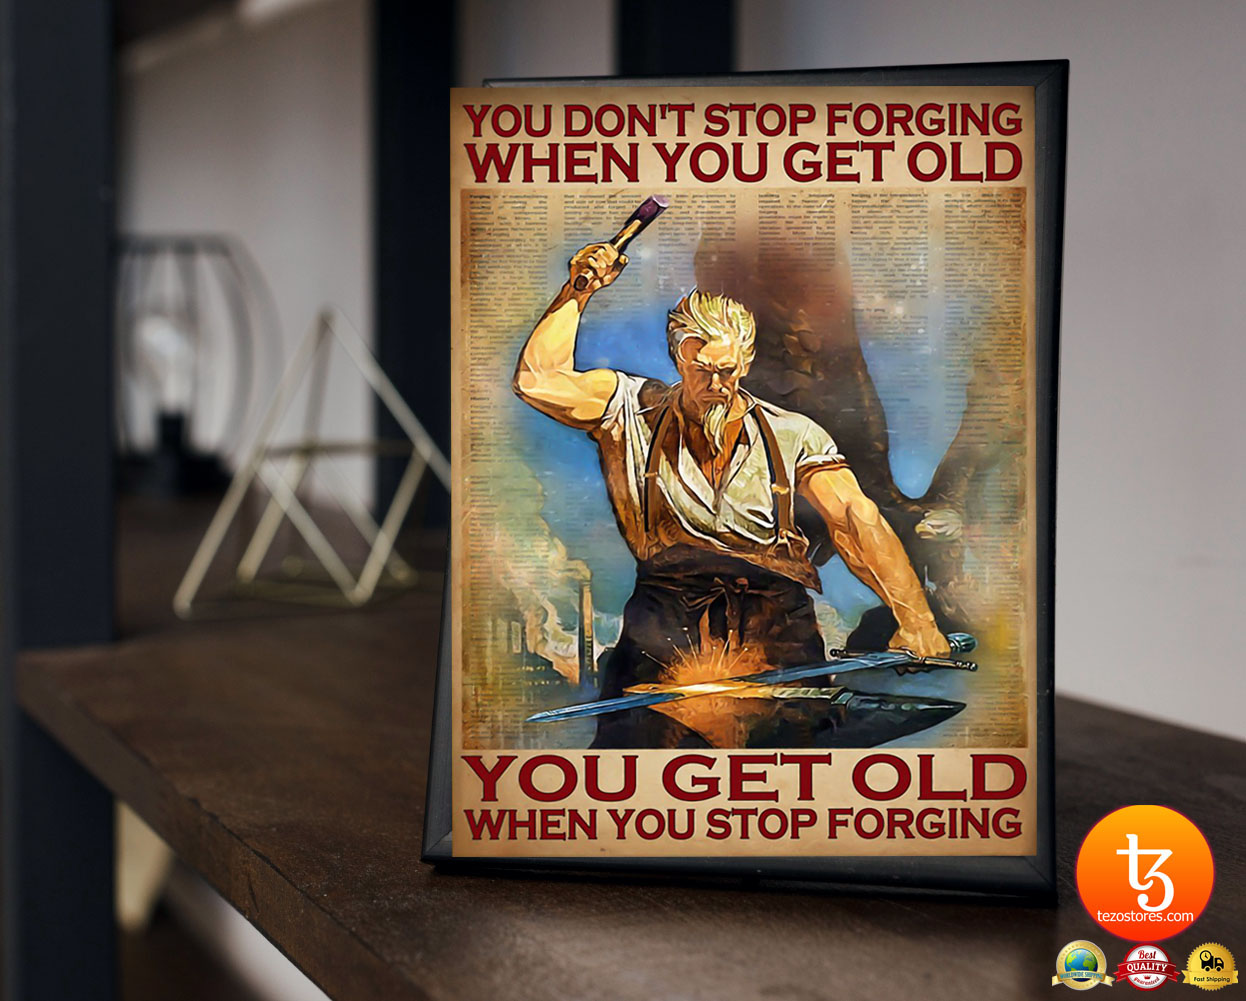 You don't stop forging when you get old poster 19